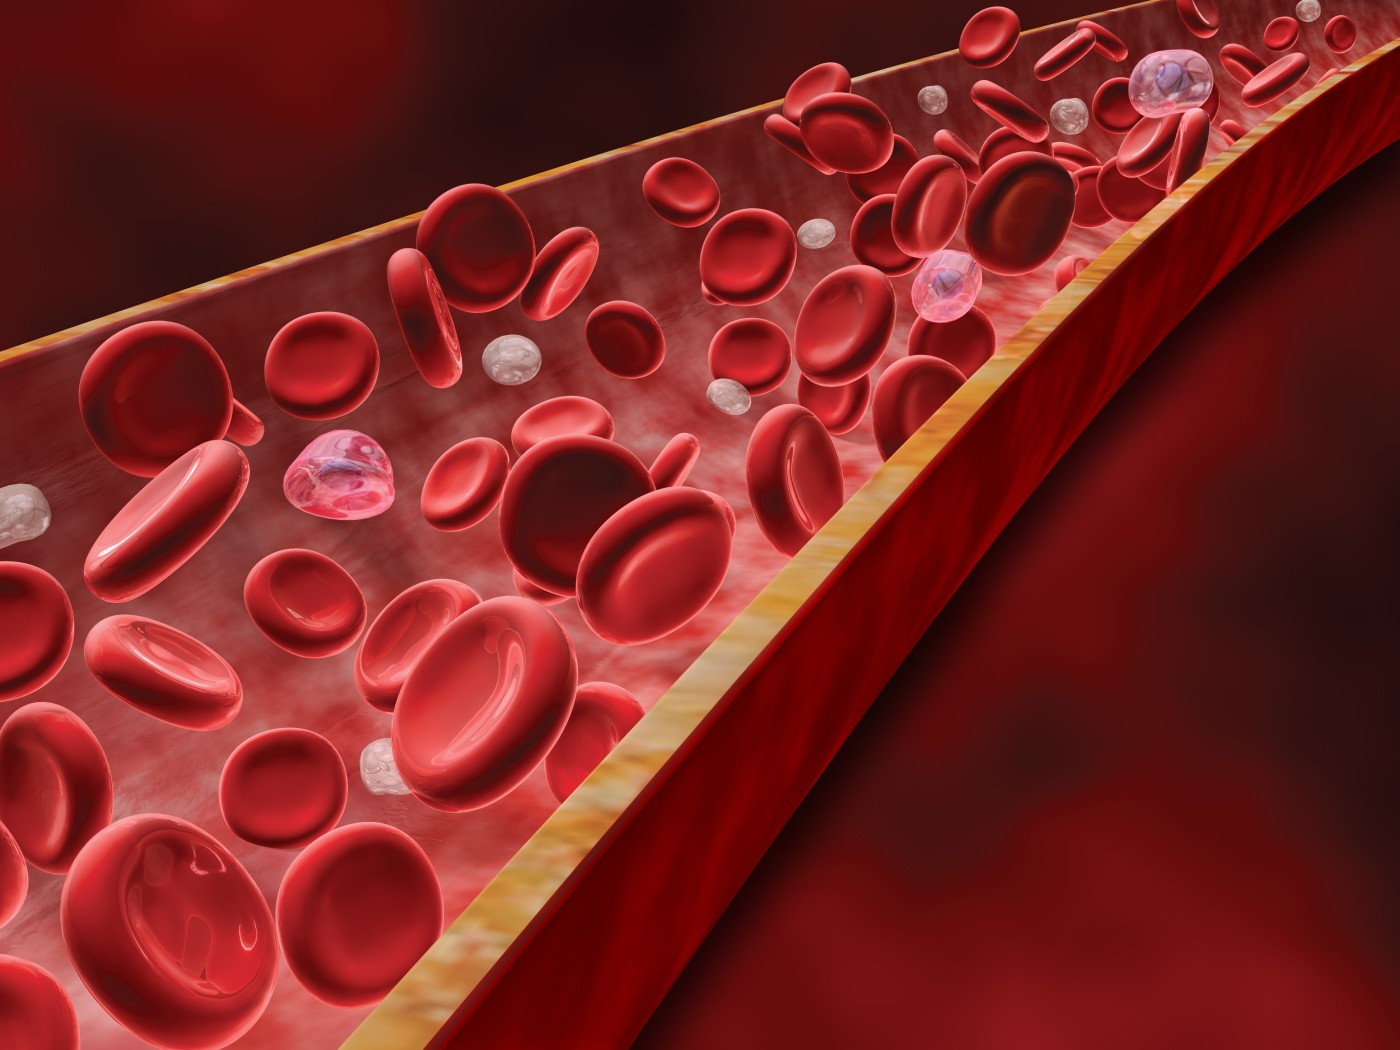 SSc-PH May Show Increase in Damaged Blood Vessel Biomarker EMPs